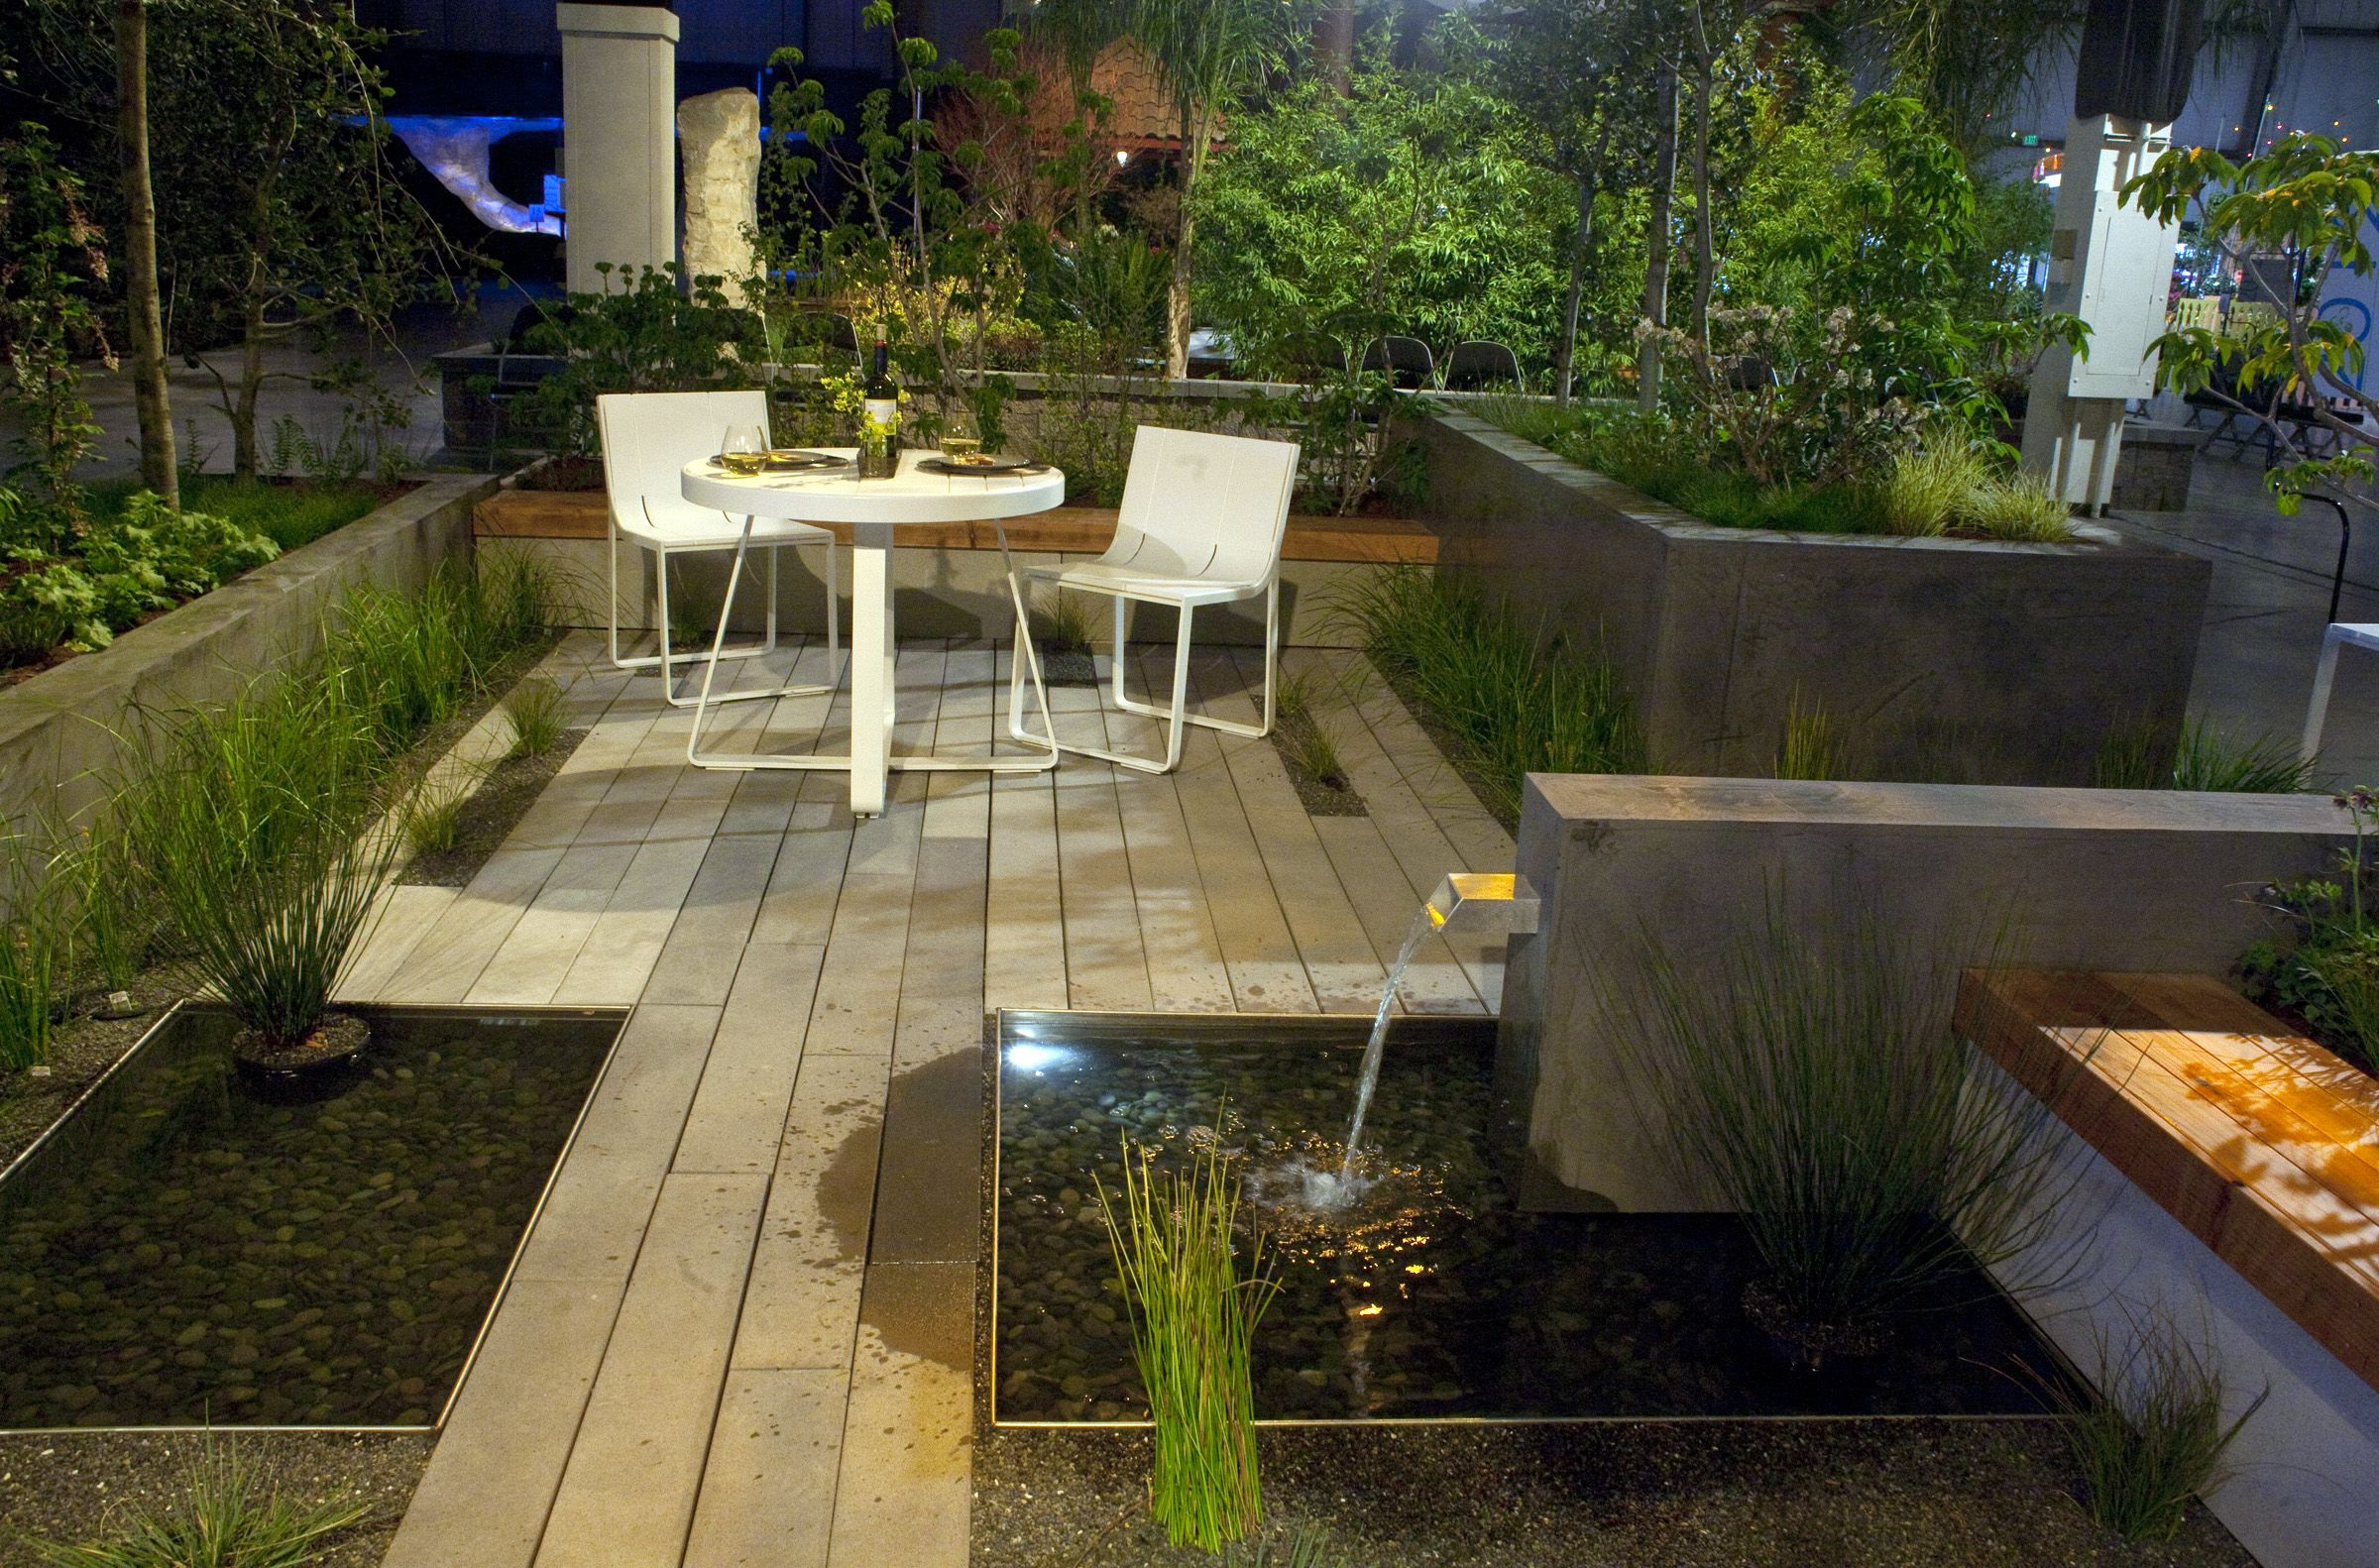 Serenity lounge envision landscape studio gold award a for Garden decking features